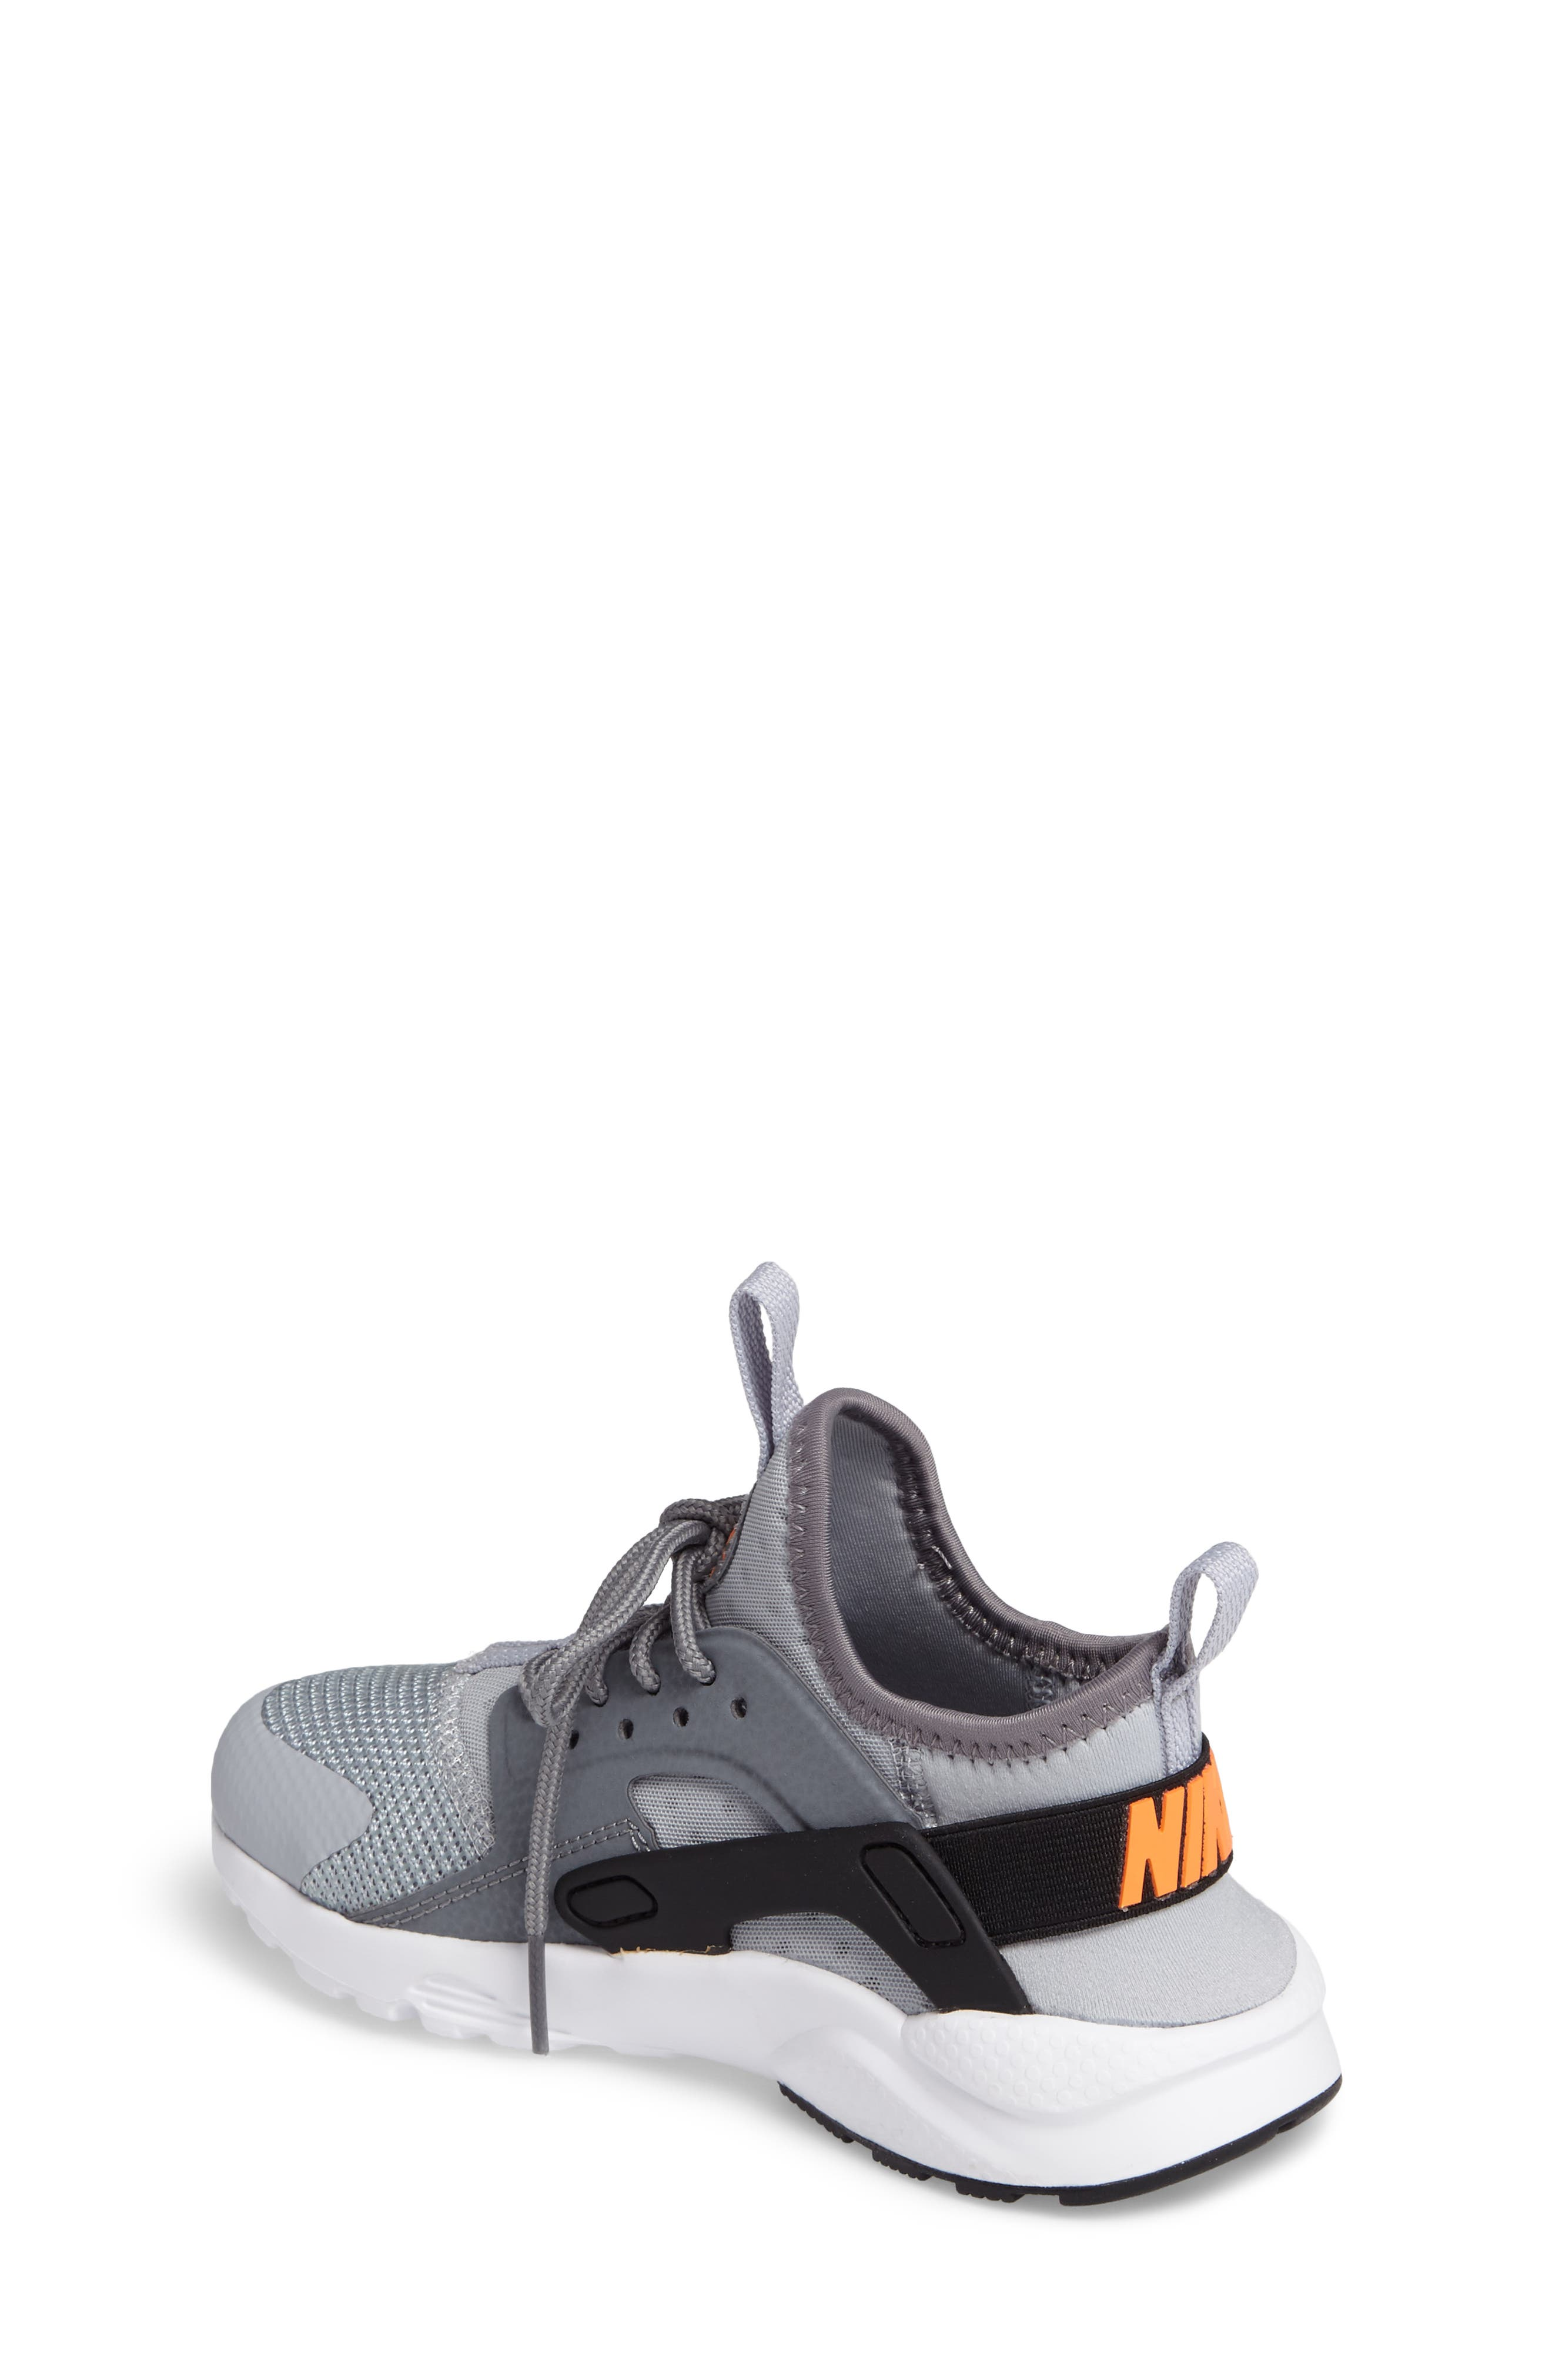 Air Huarache Run Ultra Sneaker,                             Alternate thumbnail 10, color,